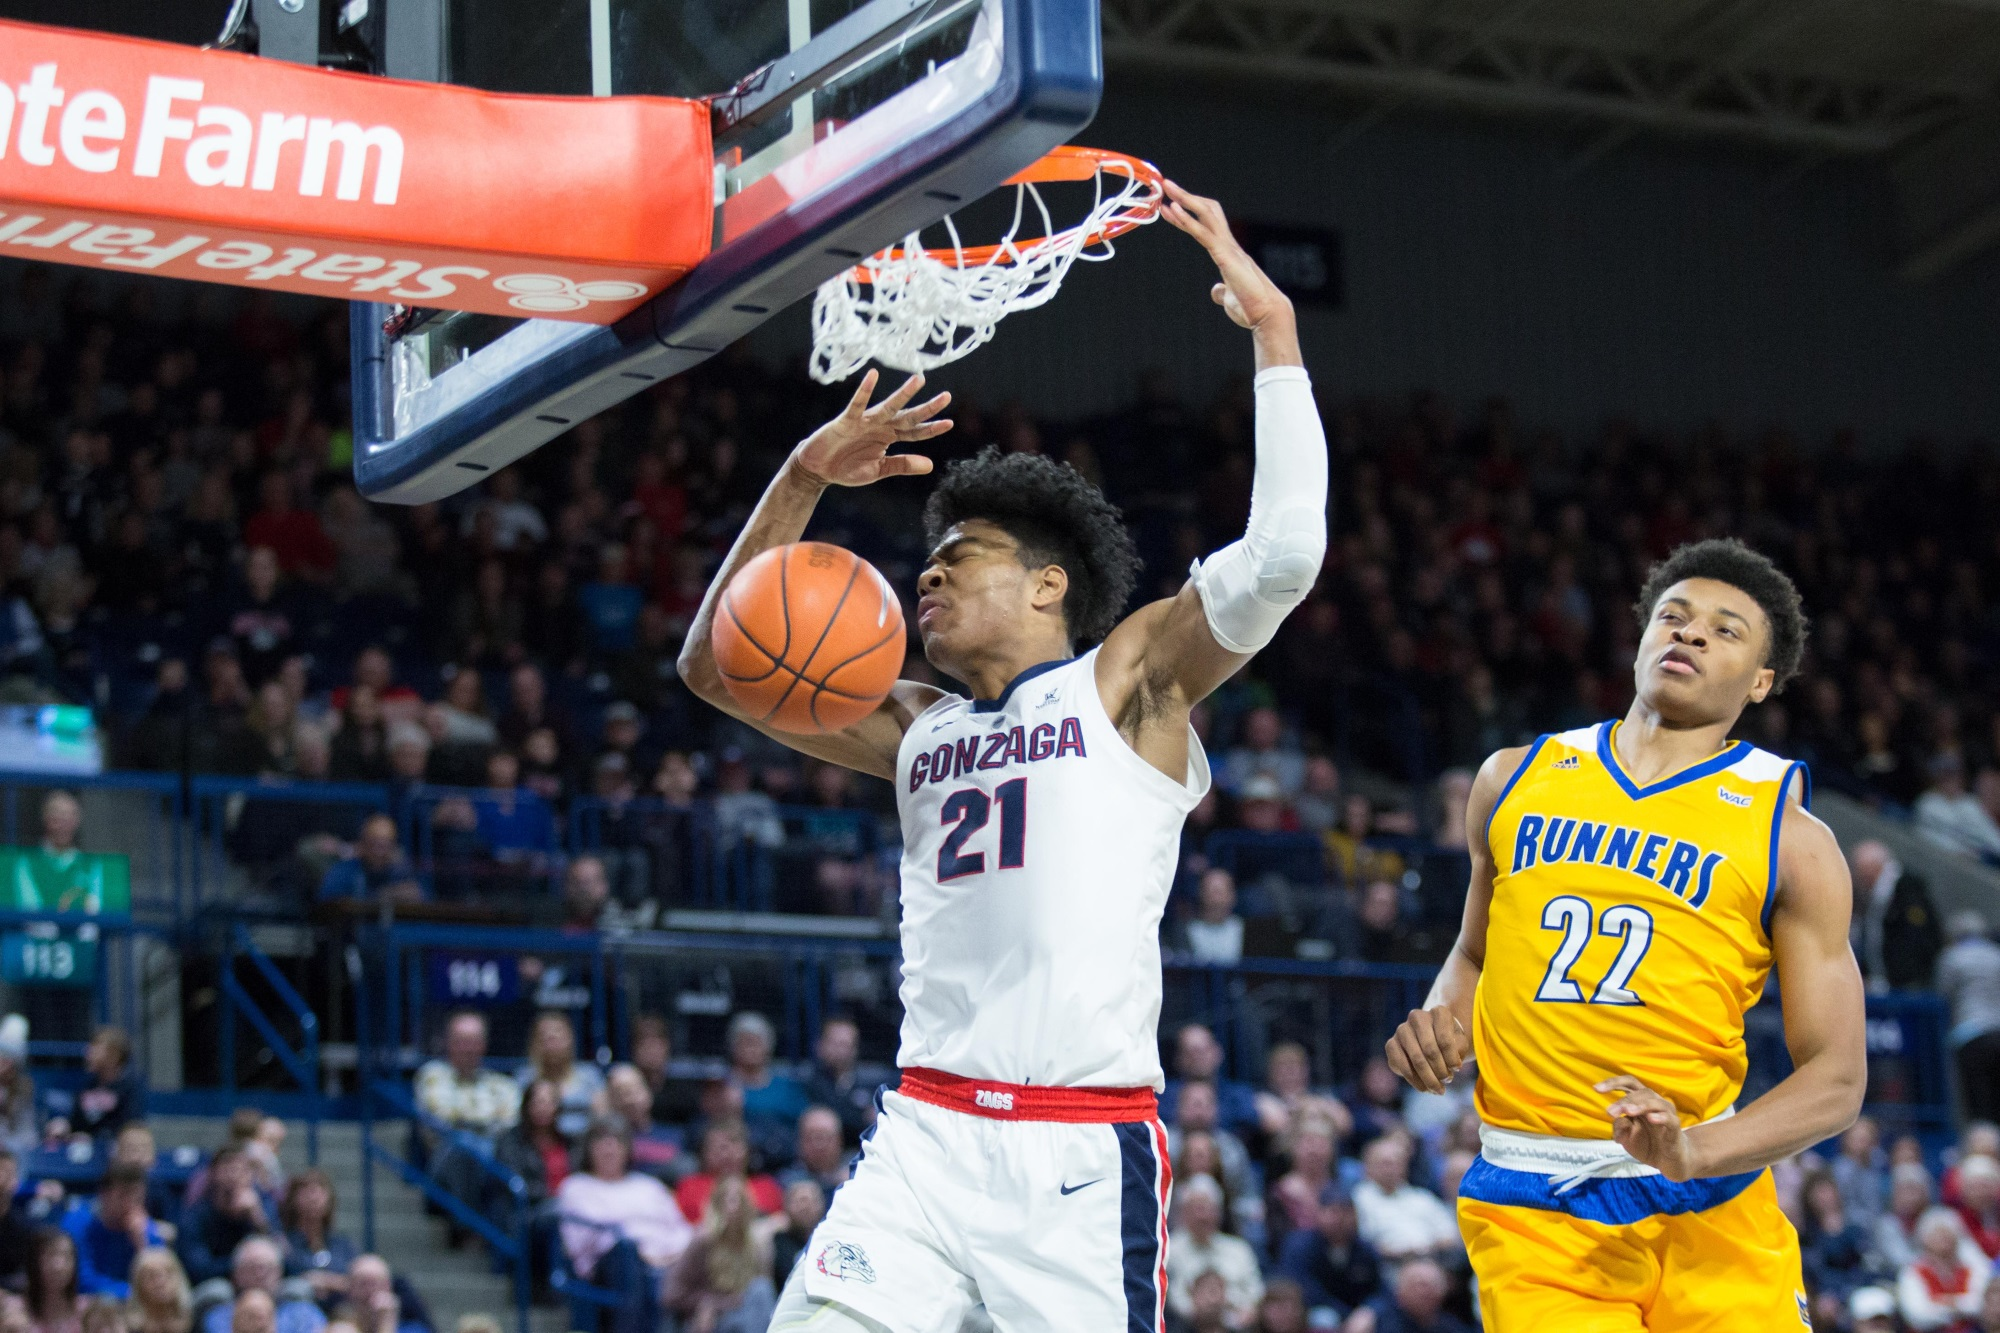 Rui Hachimura, Gonzaga vs CSU Bakersfield at the McCarthey Athletic Center